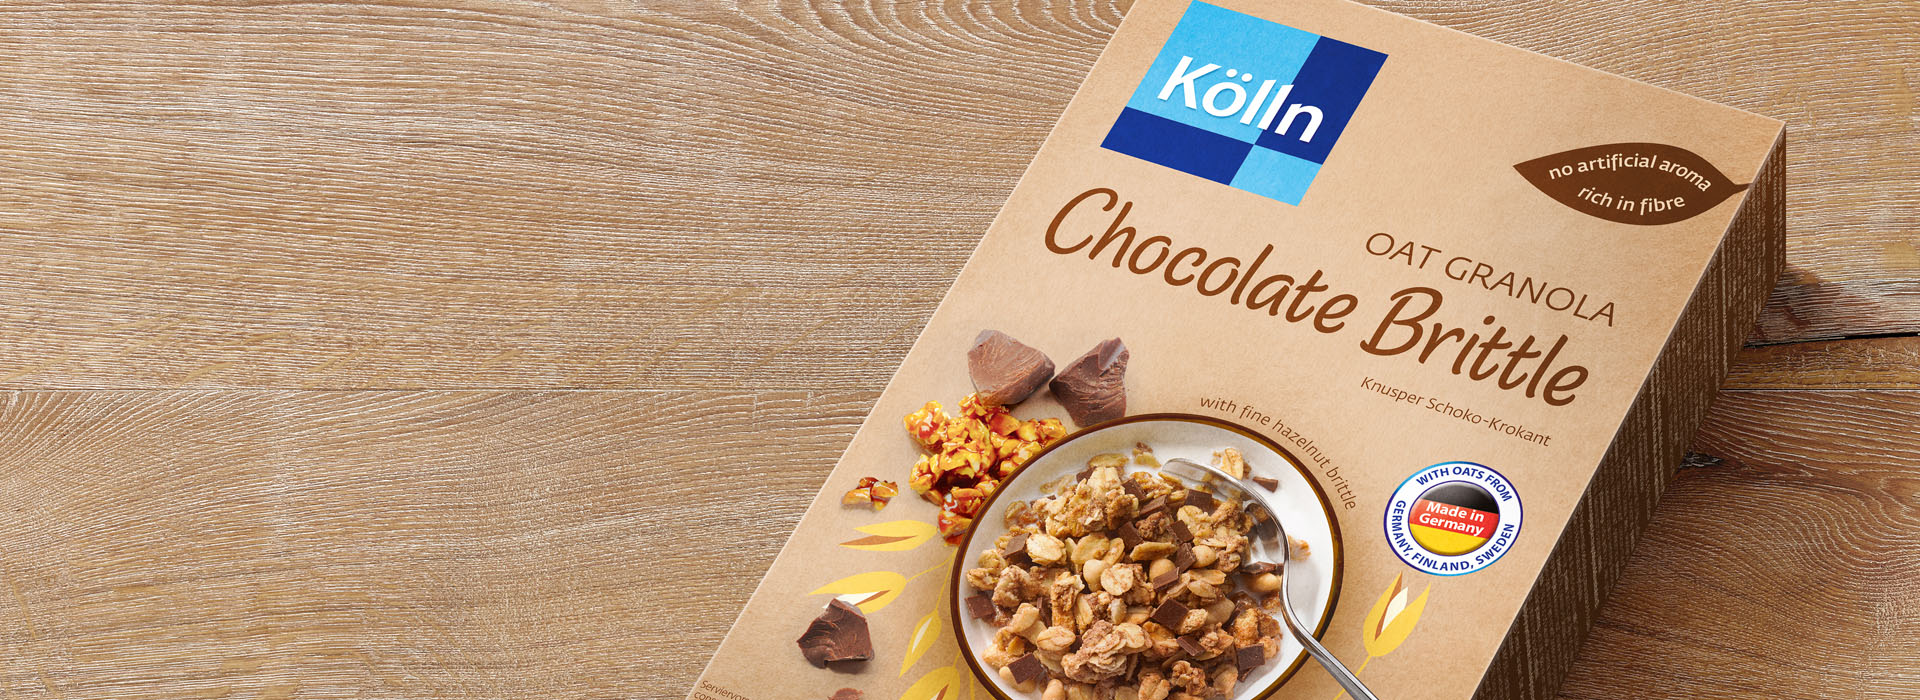 Koelln Oat Granola Chocolate Brittle Pack on Table